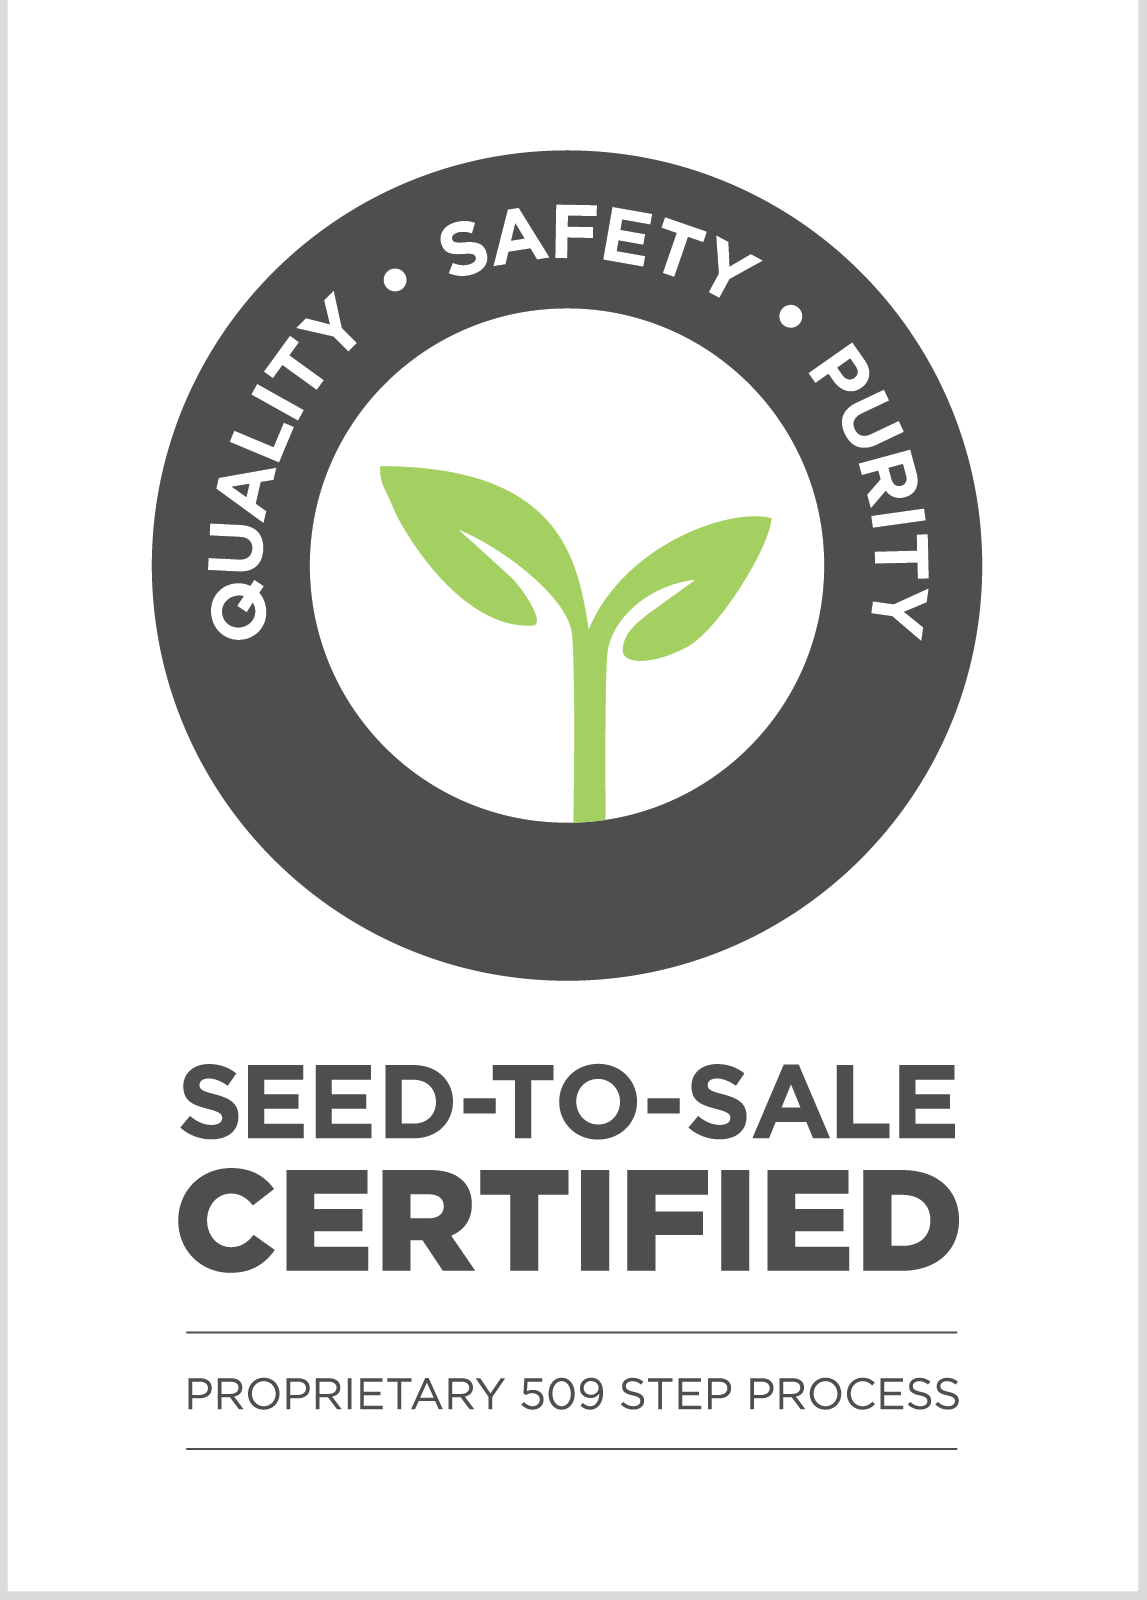 Seed-2-Sale-Certified proprietary 509 step process